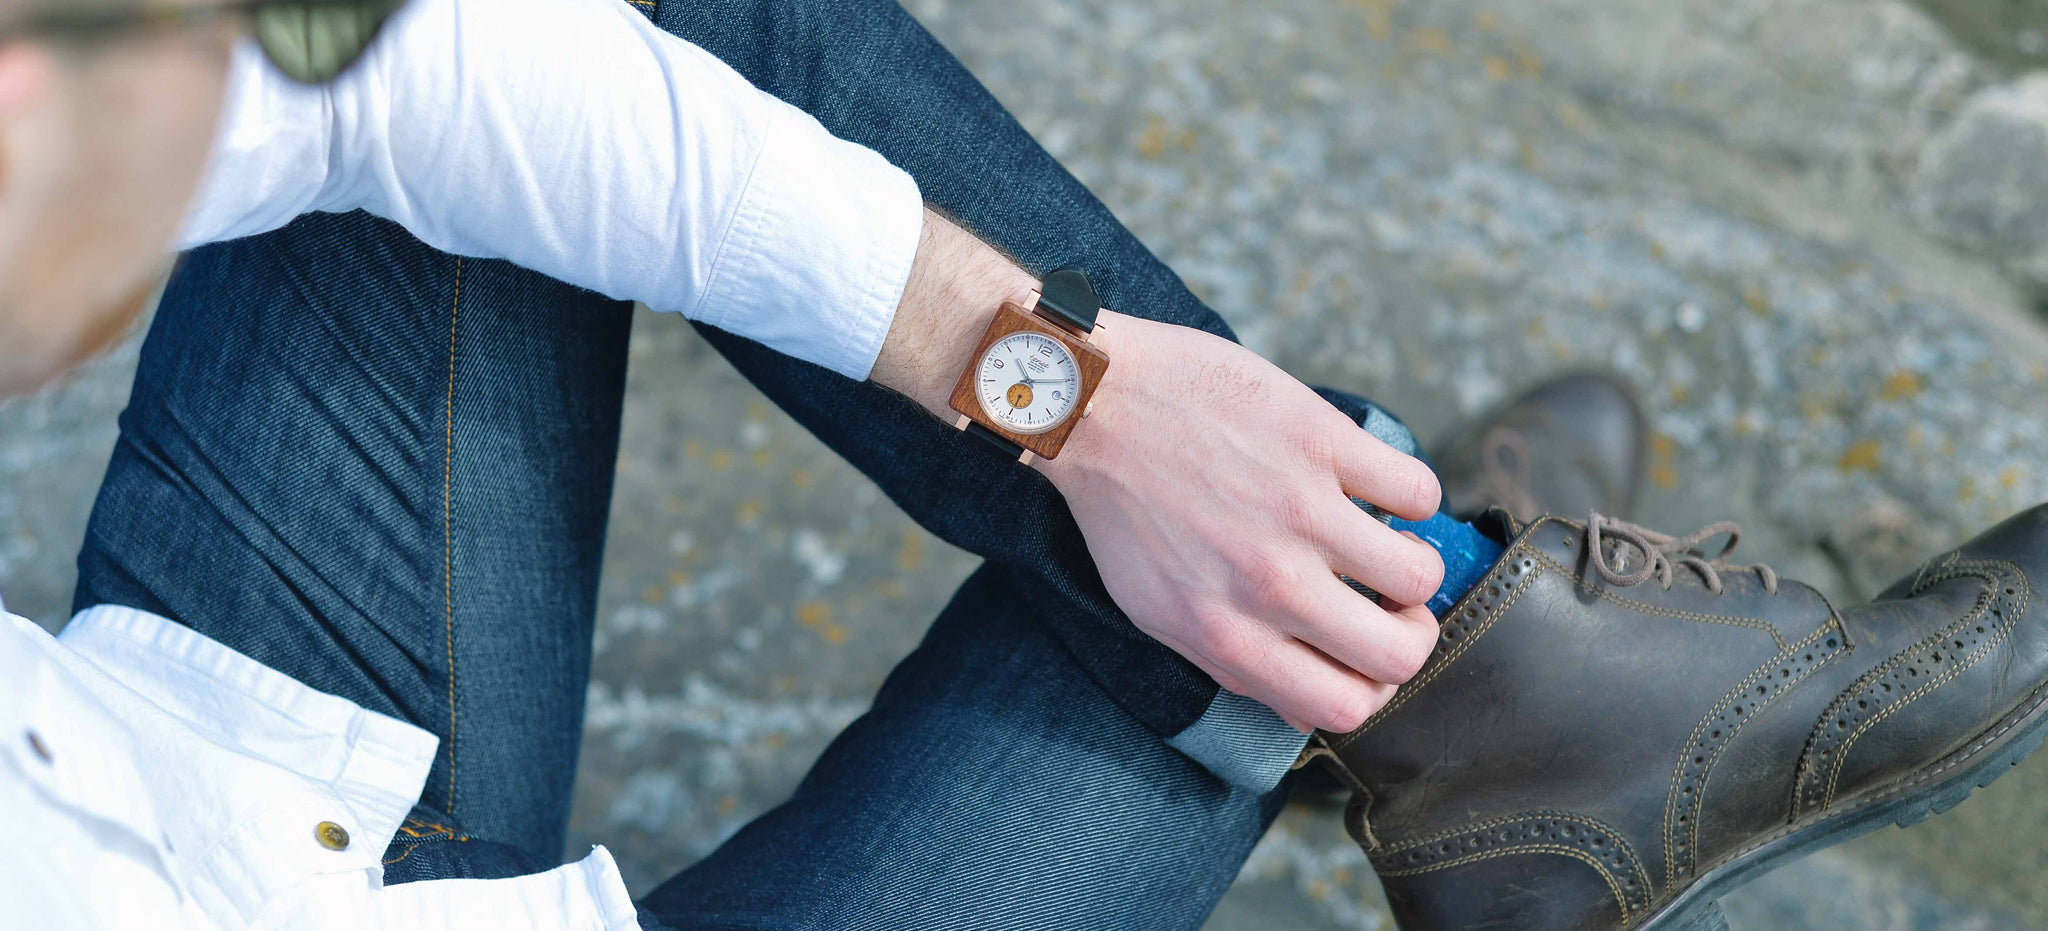 Tense Square Wood Watches - The Vermont Leather Watch